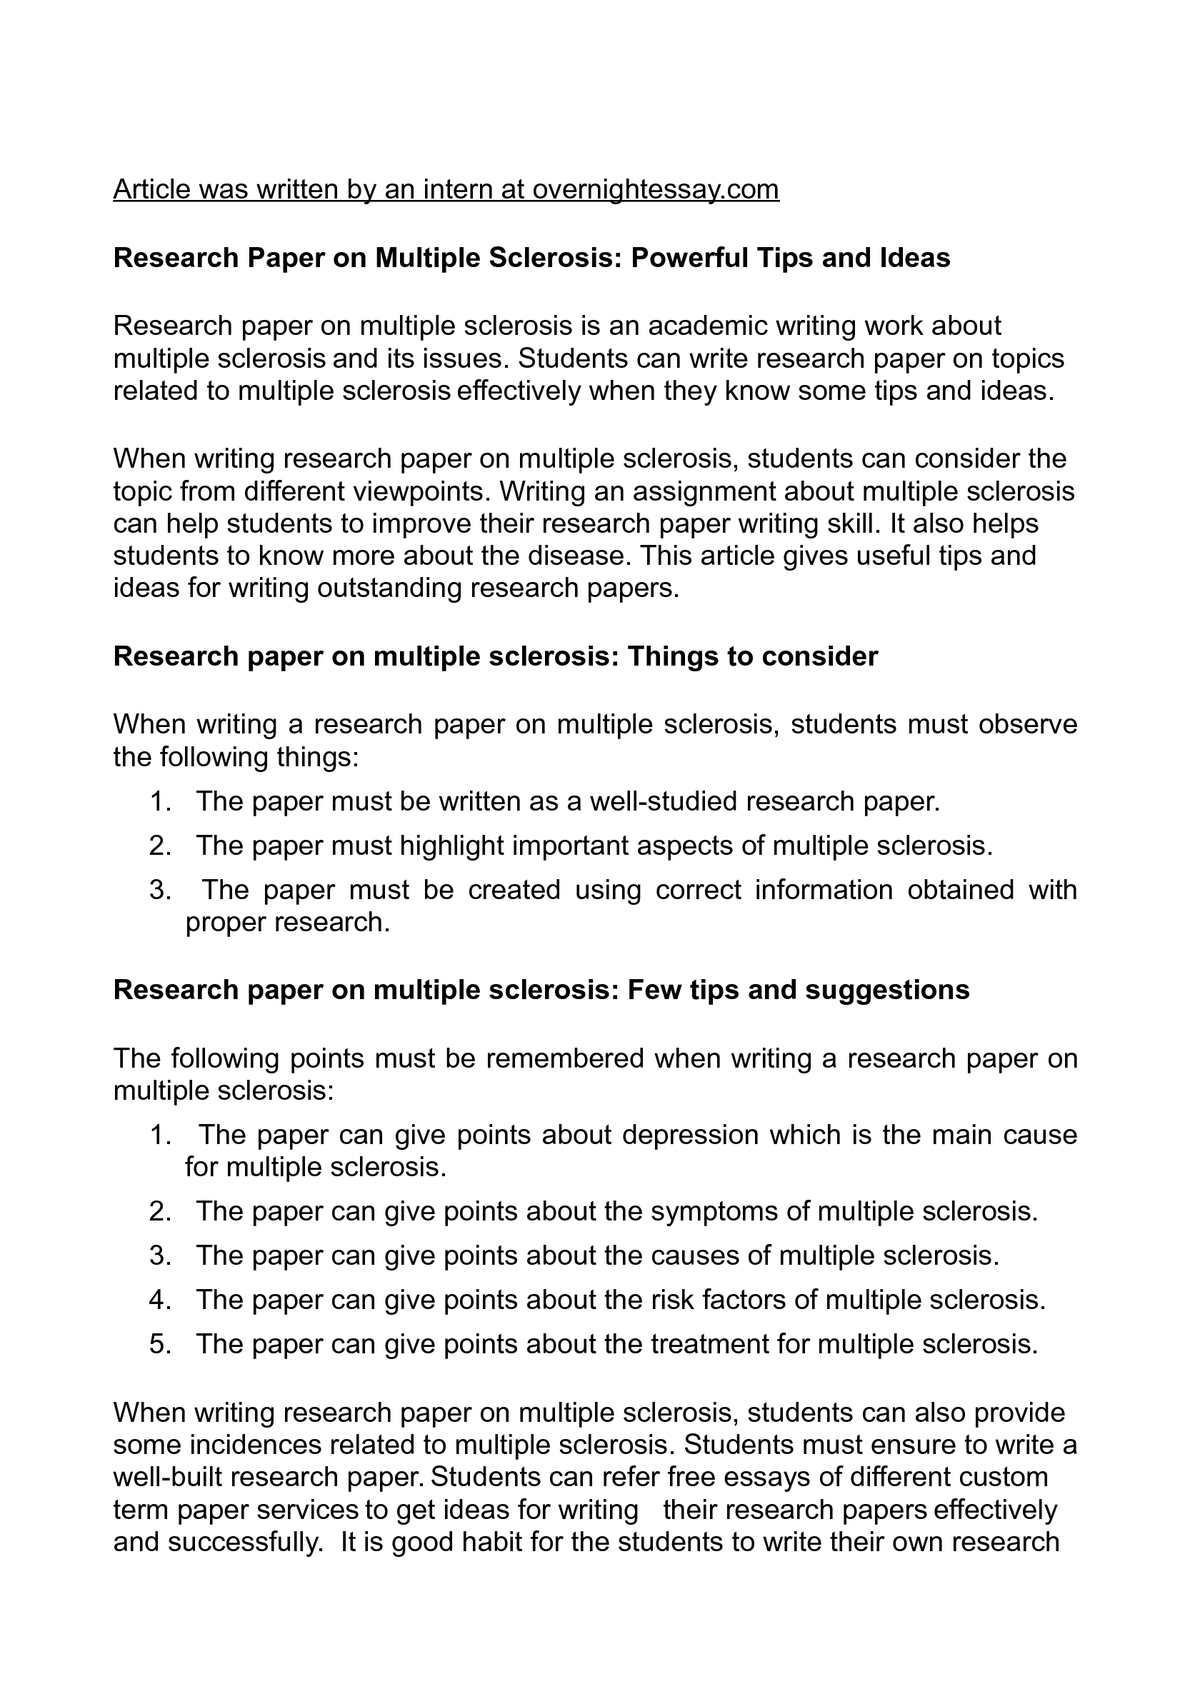 015 Research Paper How To Write Breathtaking Objectives An Abstract For English A Conclusion Apa Full